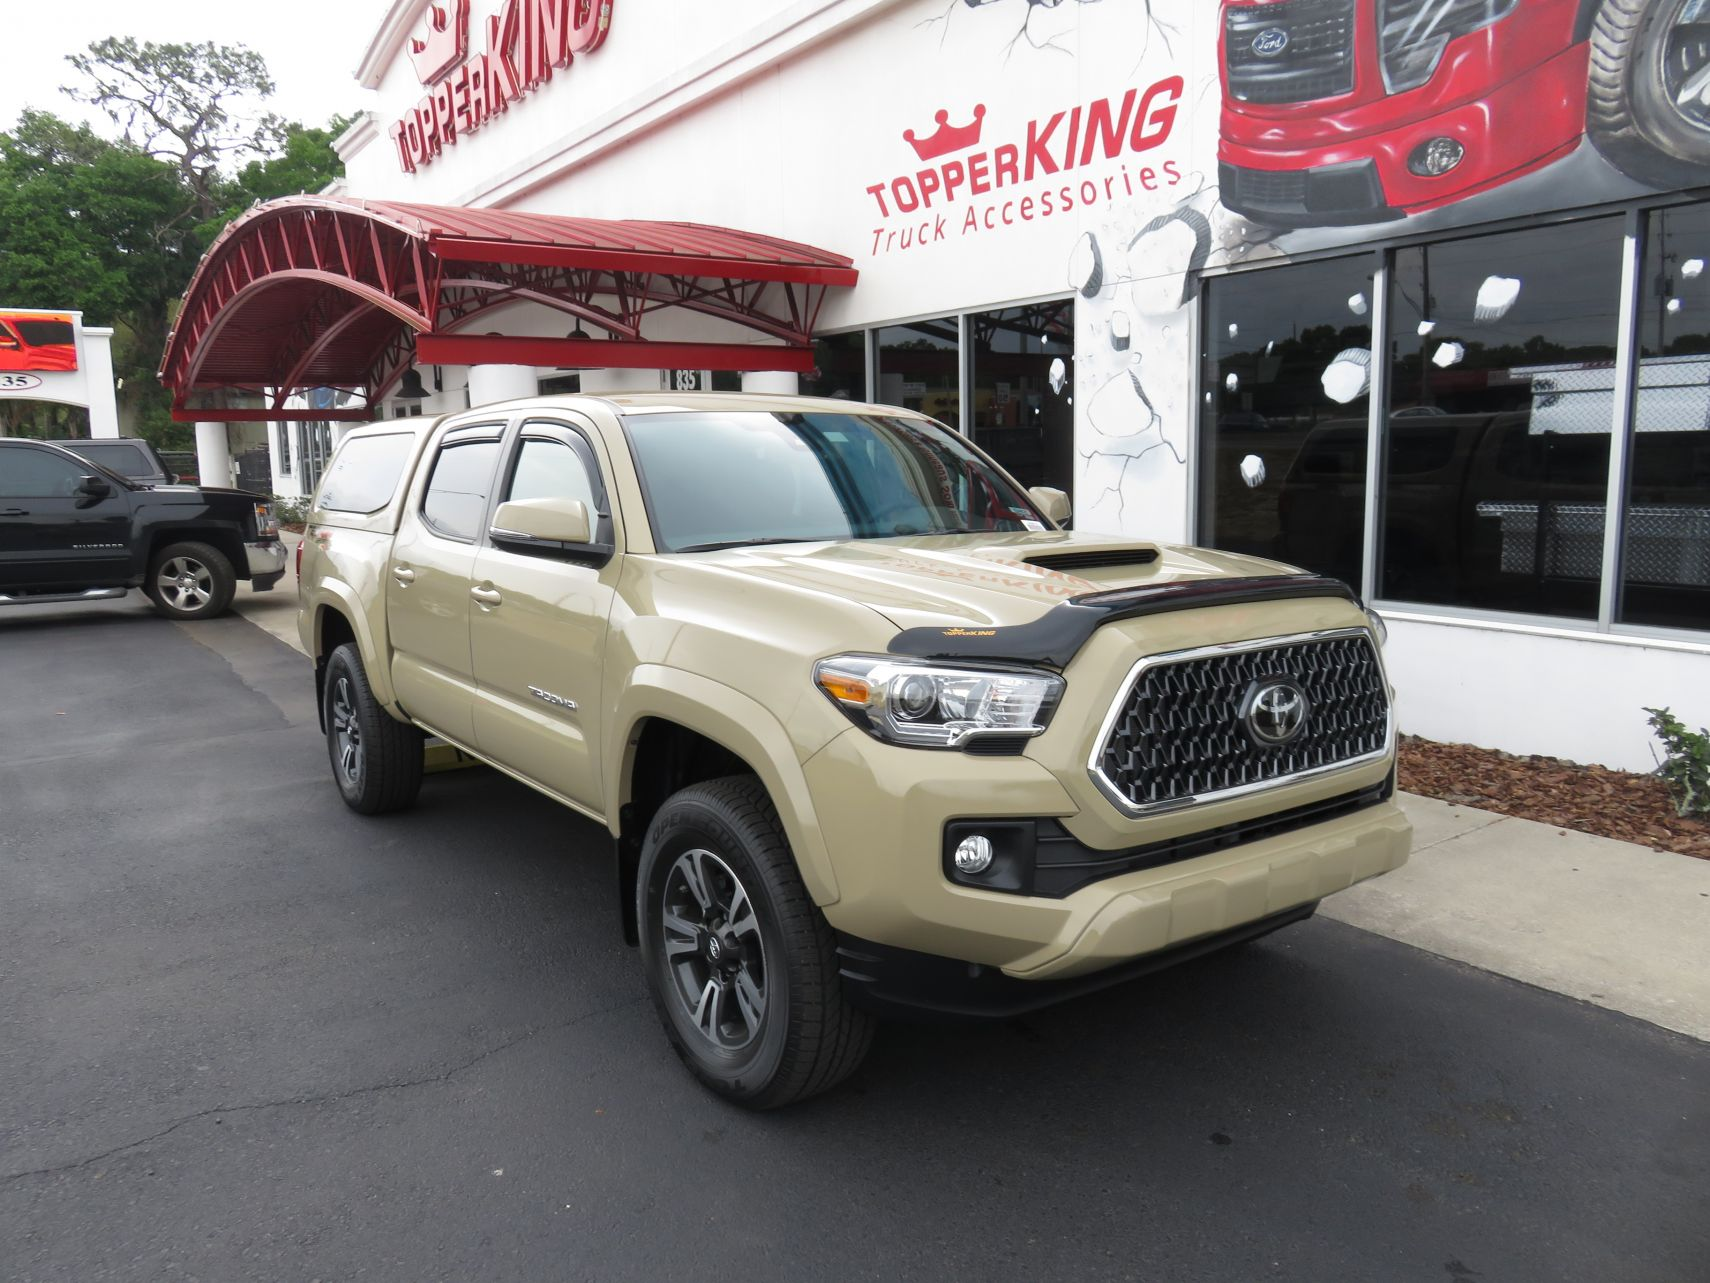 Tan Toyota Tacoma >> 2018 Toyota Tacoma Leer 100xq Bug Shield Topperking